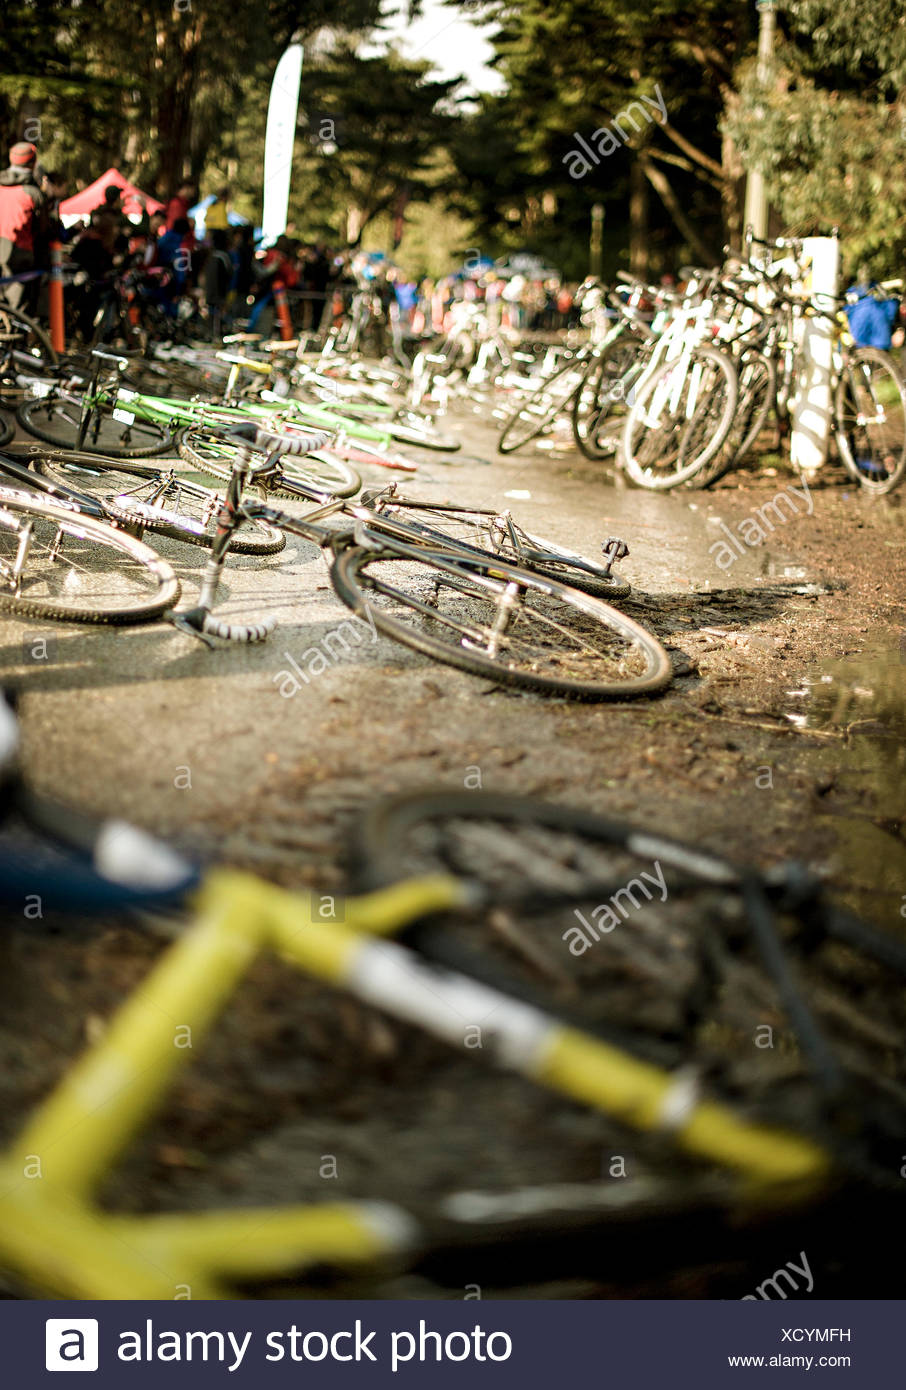 Cyclocross race bikes wait for riders in sf - Stock Image